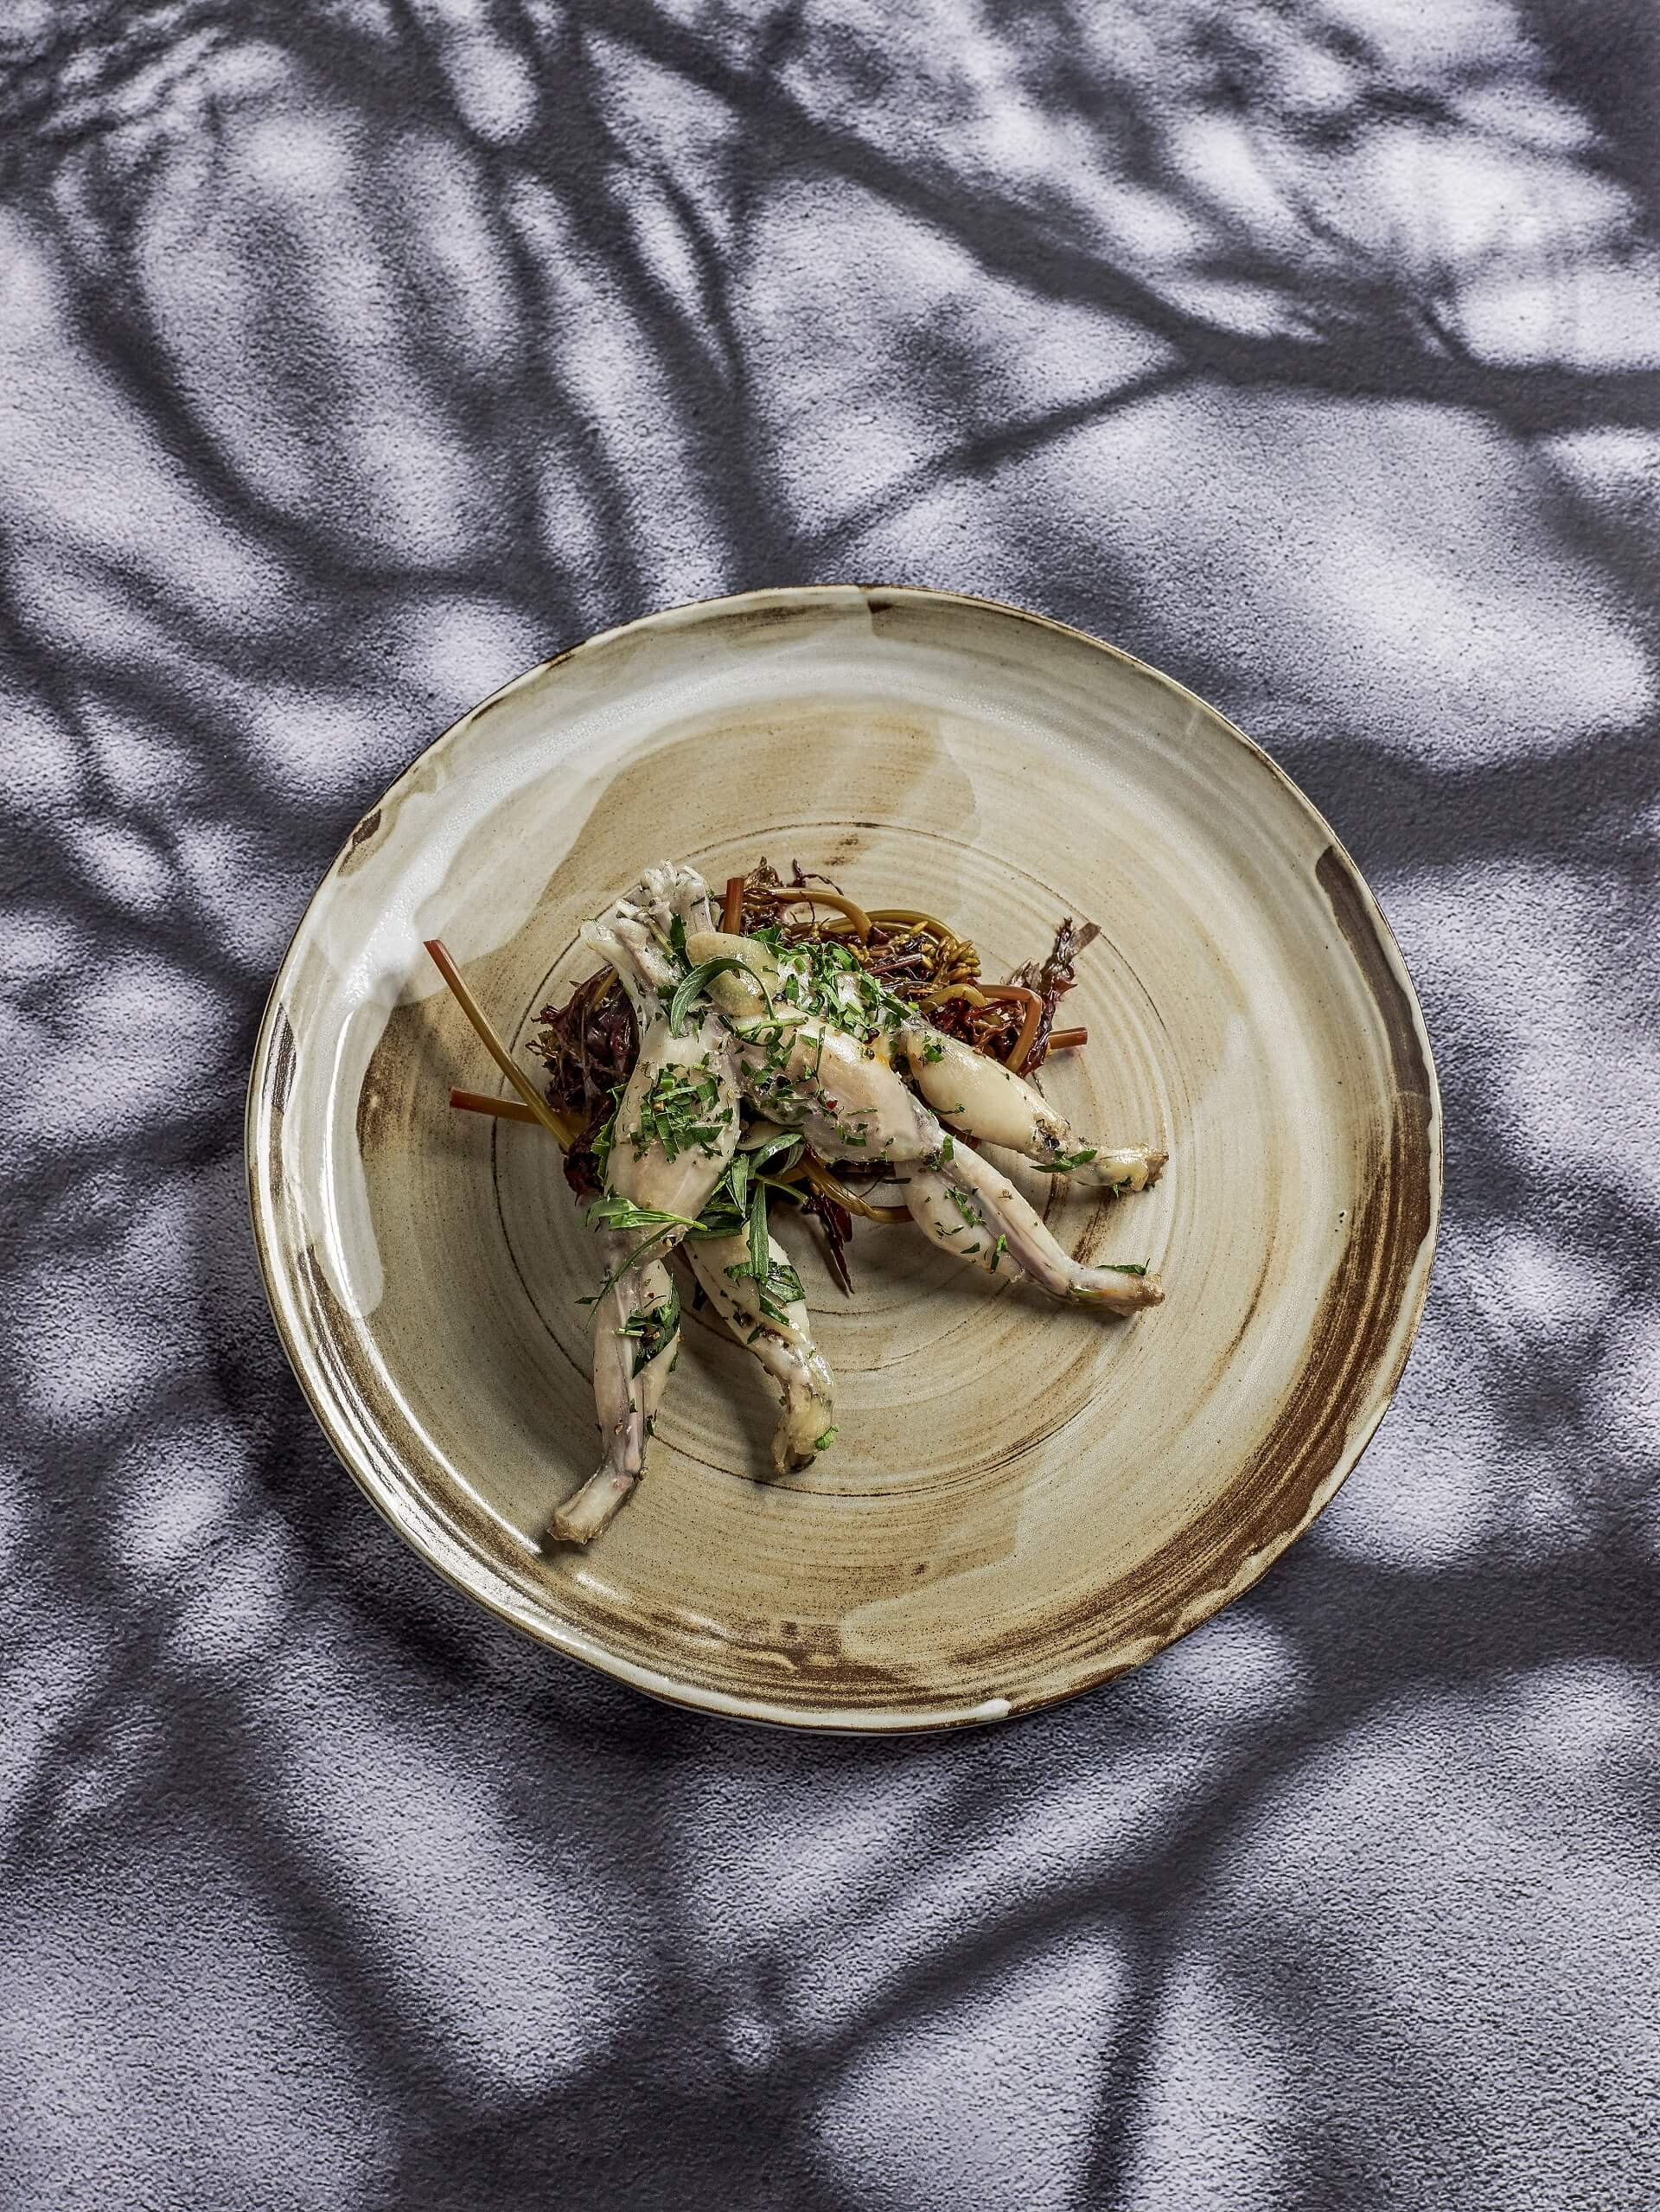 How to prepare frog legs?